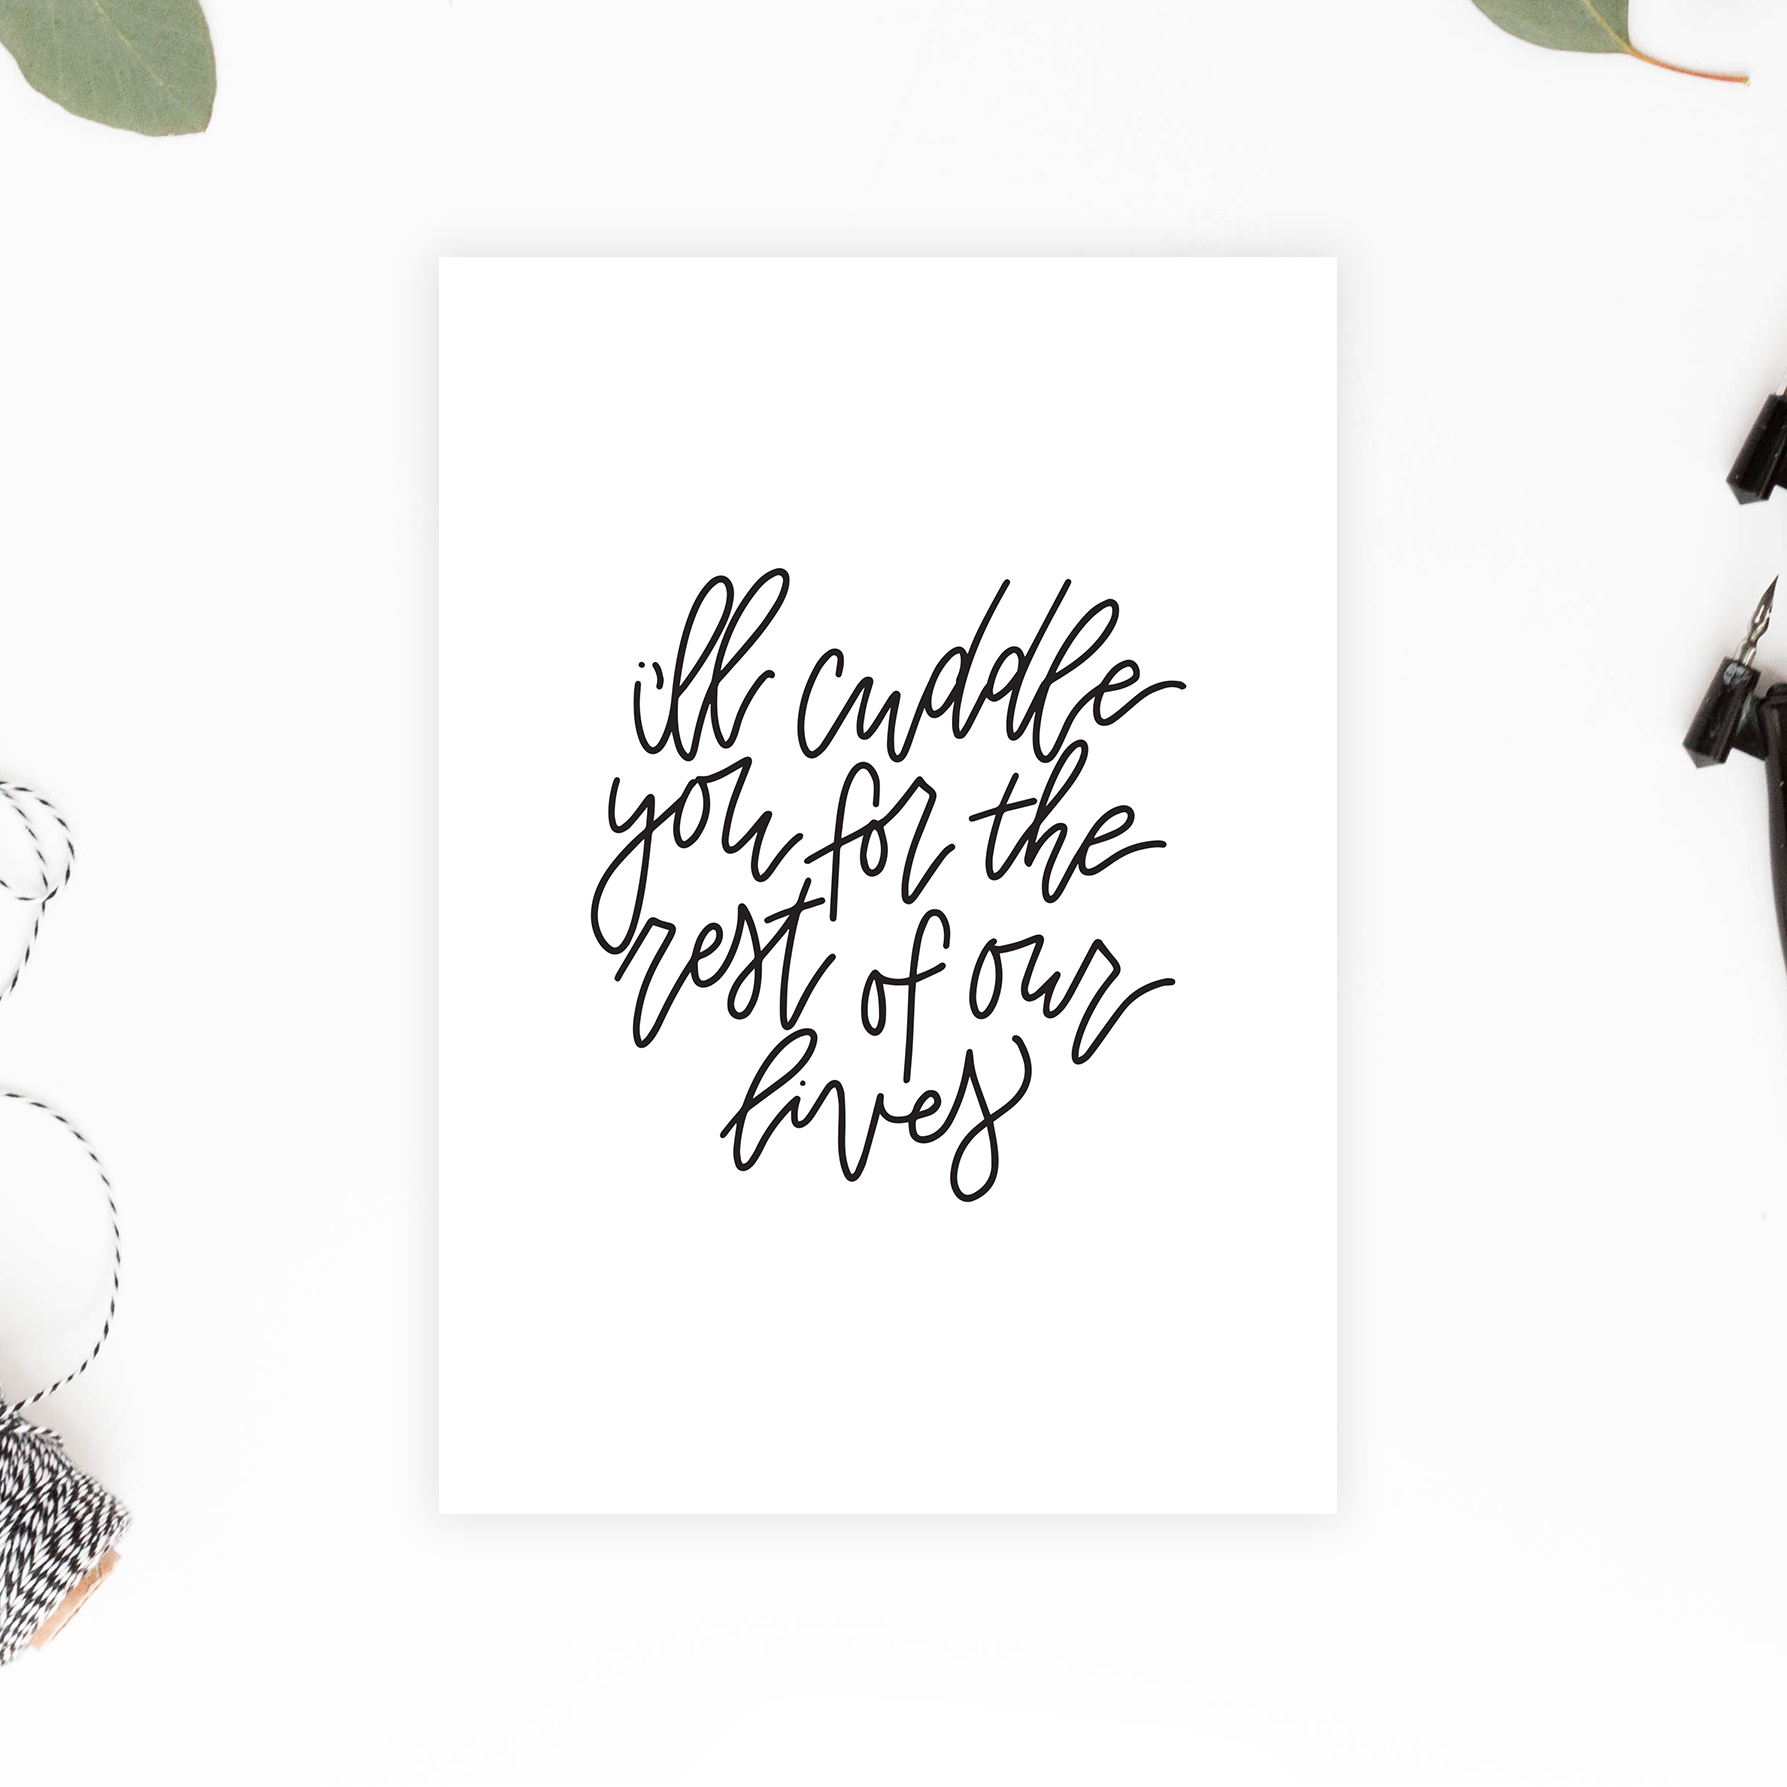 I'll Cuddle You For The Rest Of Our Lives Printable Card - Digital Download - Valentines Anniversary Card - Minimalist Valentines Card - True North Paper Co.